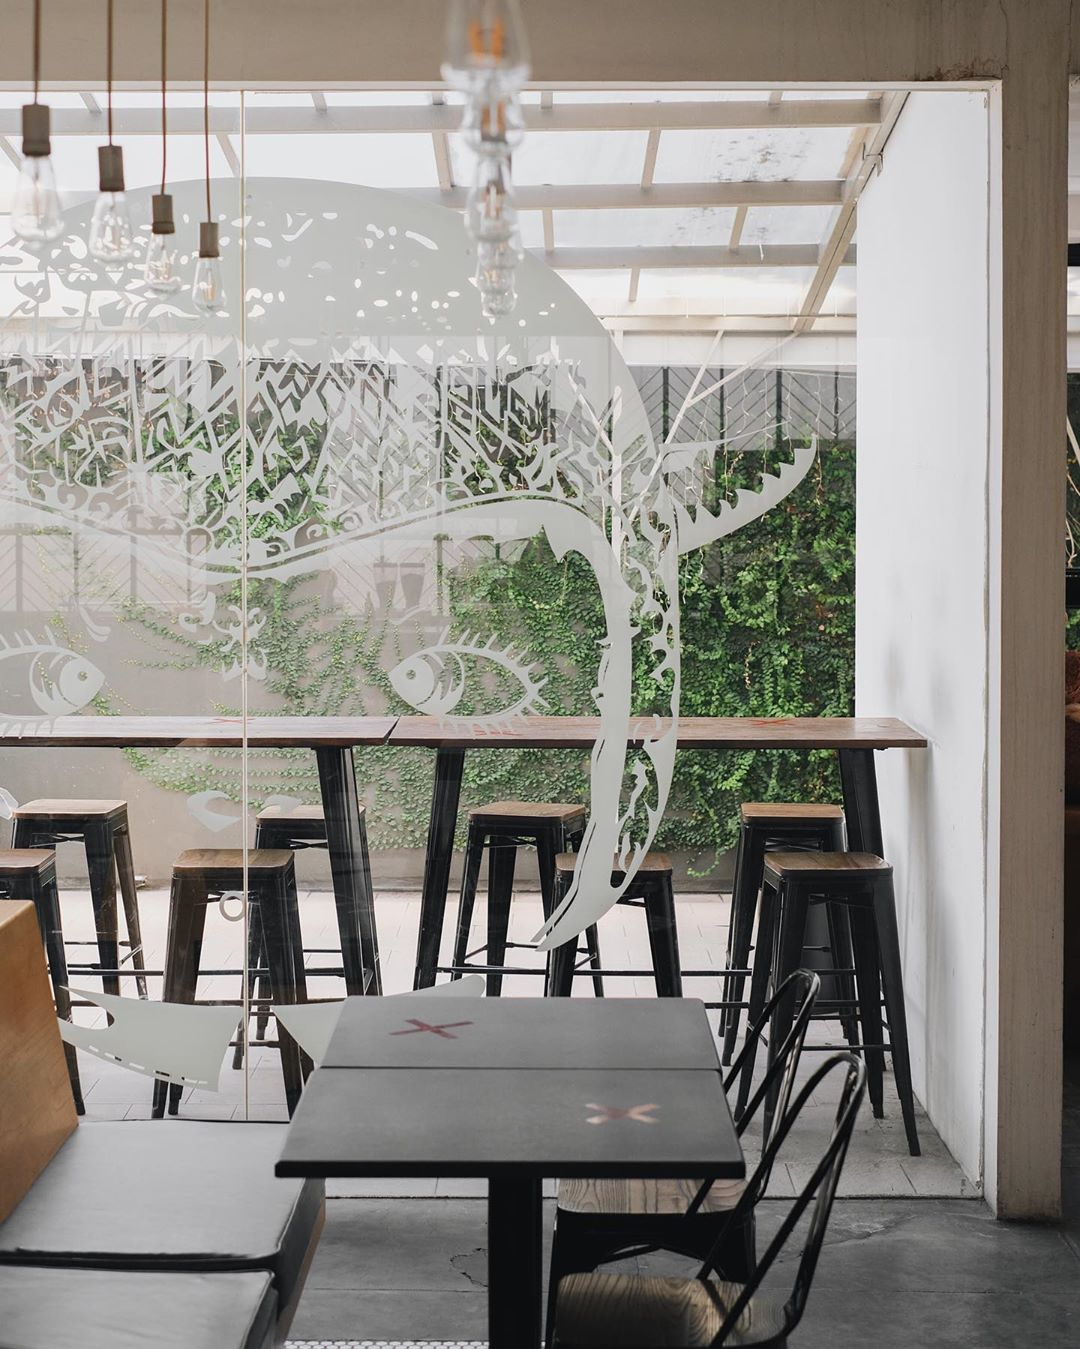 Labore Coffee Eatery Cafe Instagramable Malang Interior Hijau